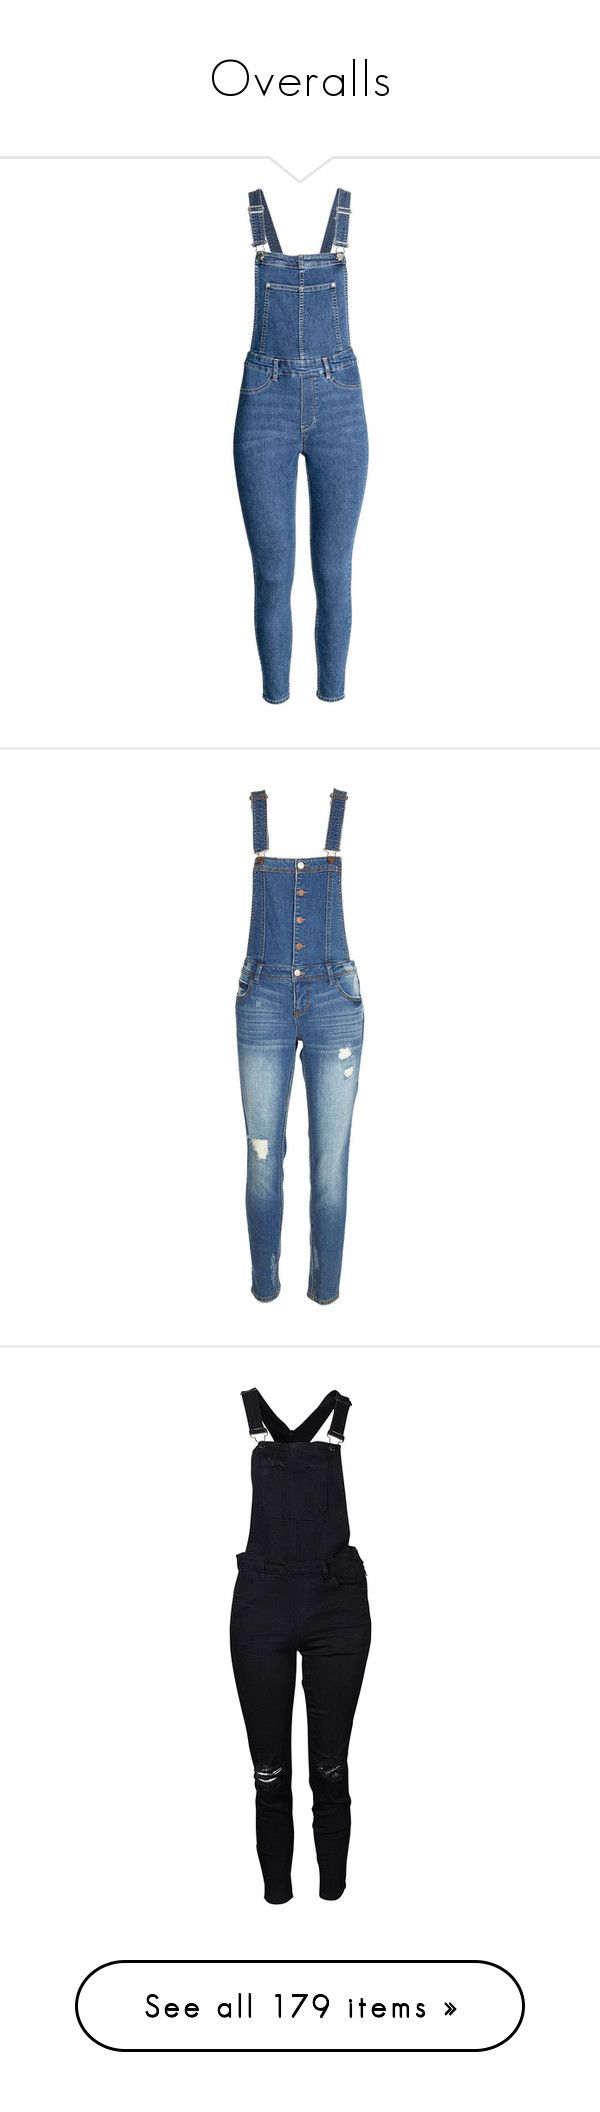 """Overalls"" by rebellious-ingenue ❤ liked on Polyvore featuring jumpsuits, bottoms, jeans, pants, dresses, bib overalls, blue overalls, h&m jumpsuit, overalls jumpsuit and blue bib overalls"